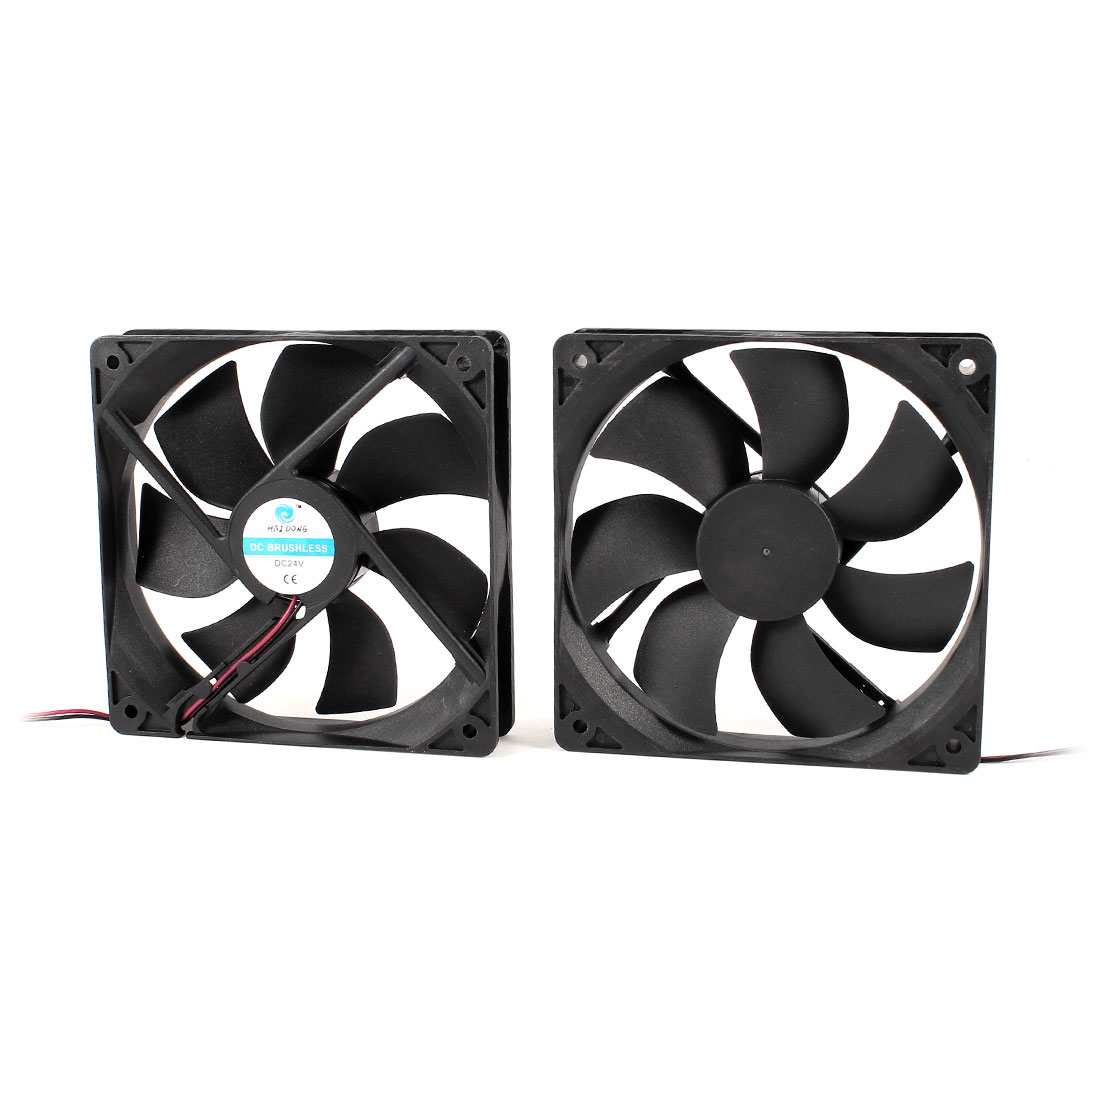 2 Pcs DC 24V 12025 120mmx120mmx25mm 2-Wire Cooling Fan Black for PC Case Cooler